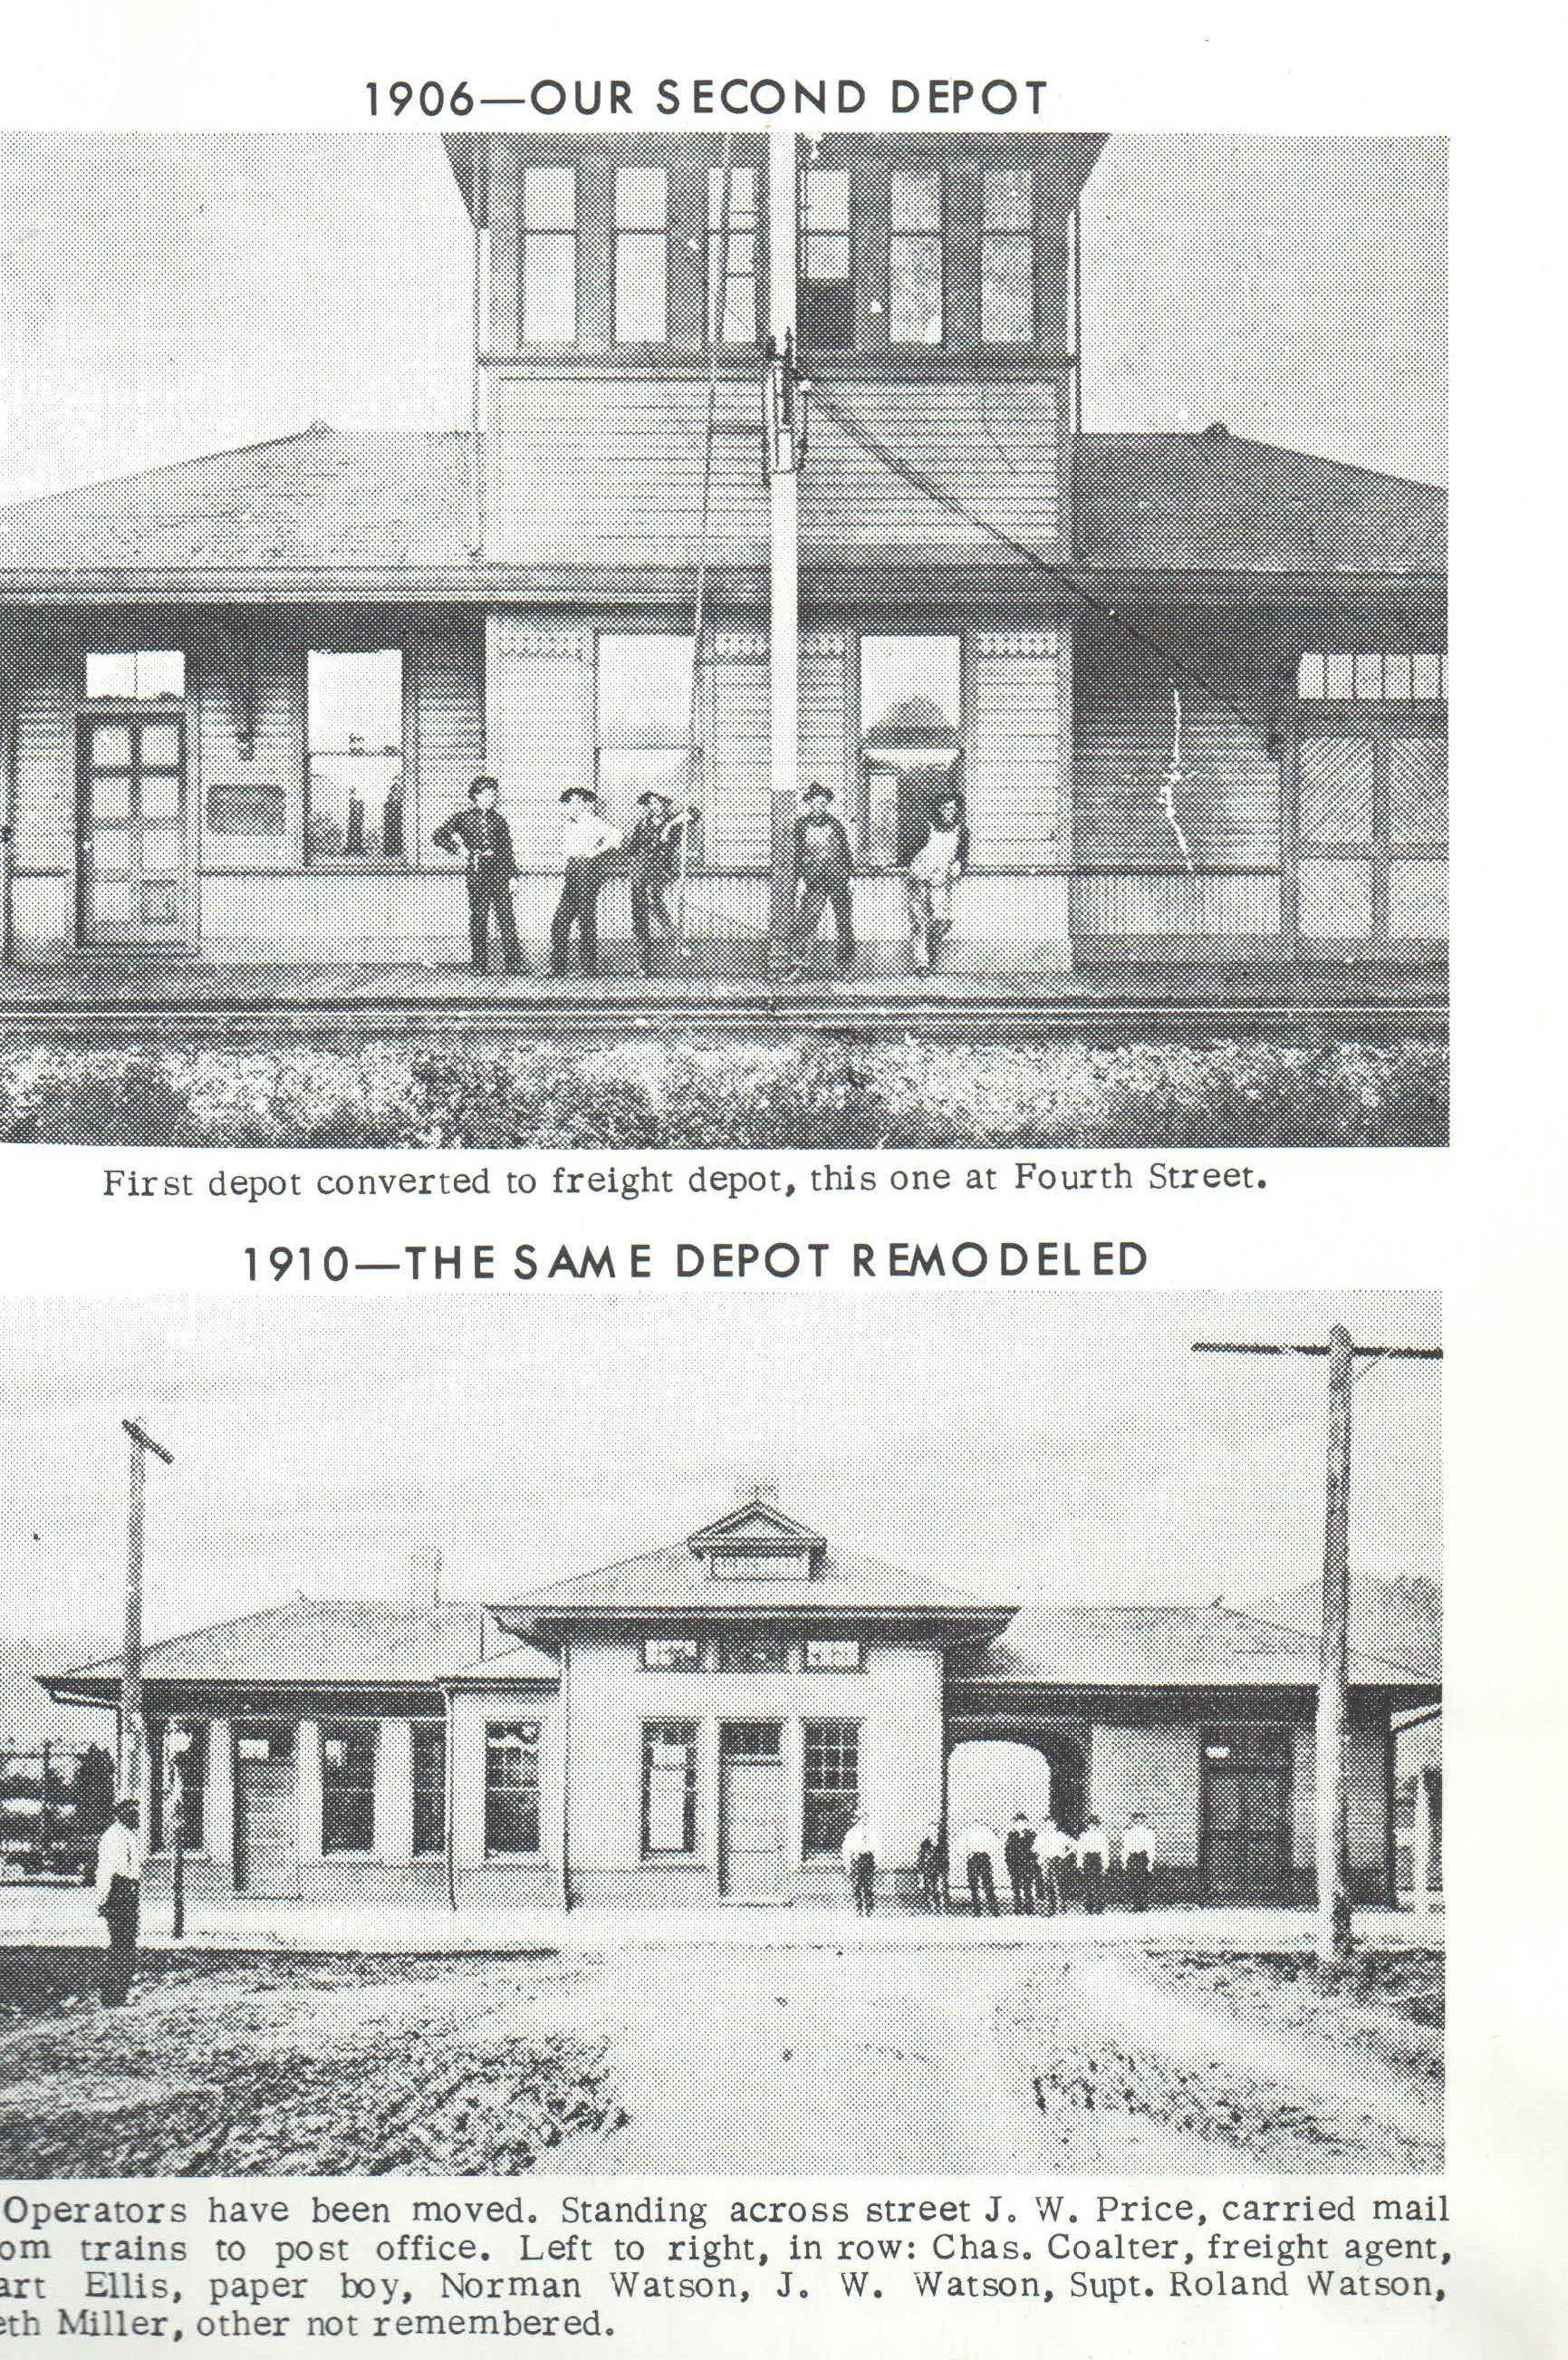 Here is a picture of the Chesapeake and Ohio Depot 